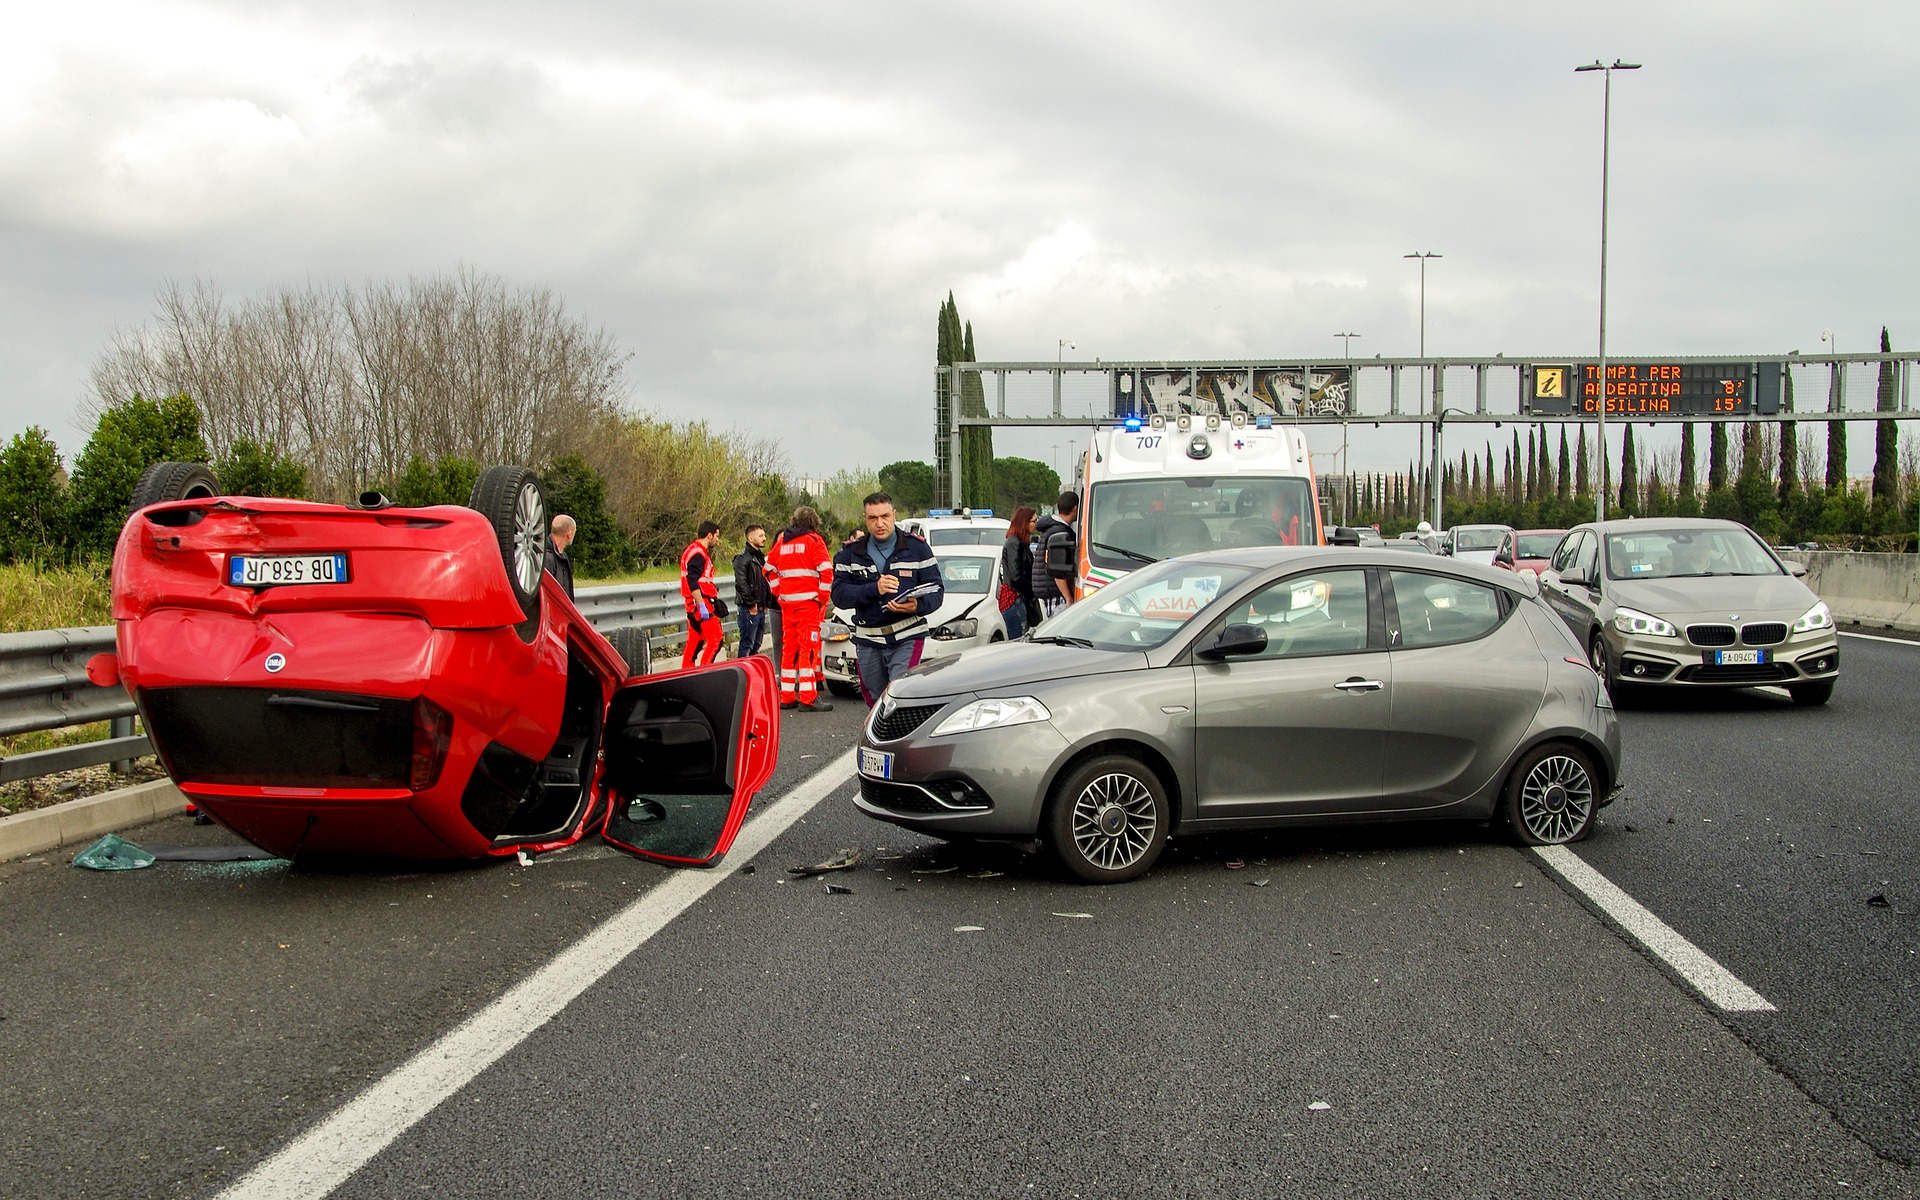 How Much Compensation Can You Claim For a Car Accident?